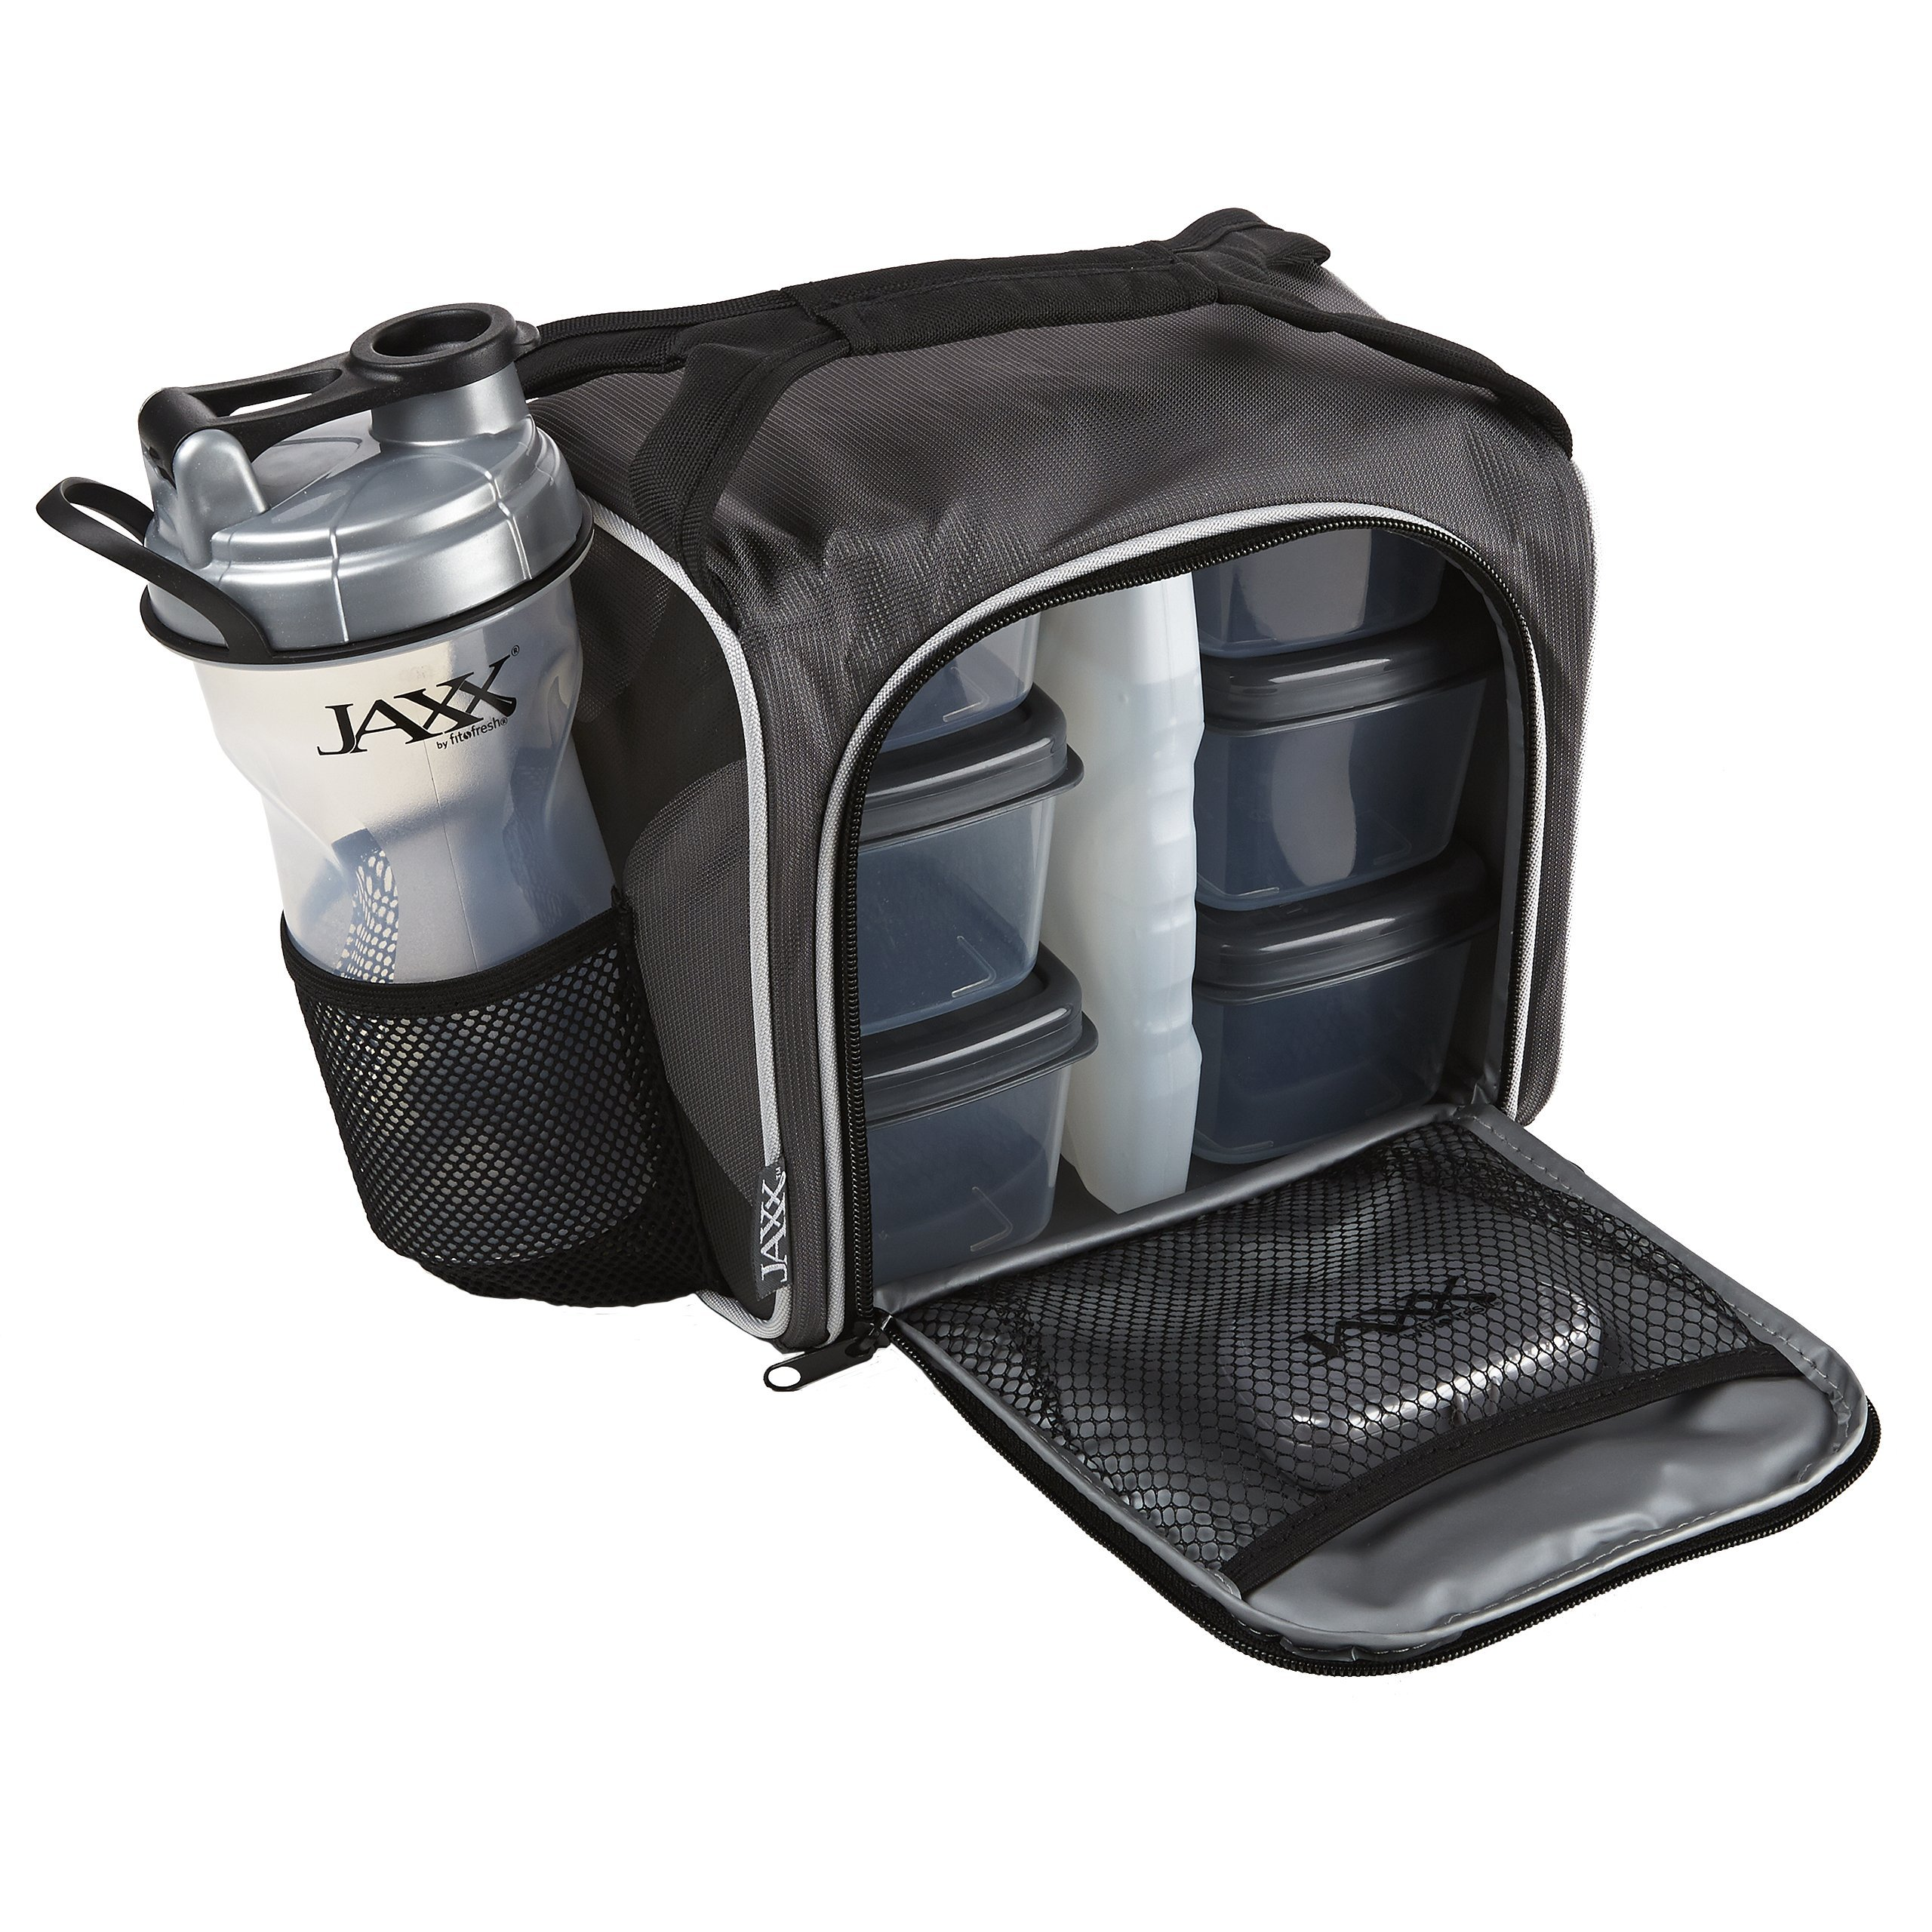 Fit & Fresh Original Jaxx FitPak Insulated Meal Prep Bag with Portion Control Containers, Ice Pack and 28-ounce JAXX Shaker Bottle, Silver by Fit & Fresh